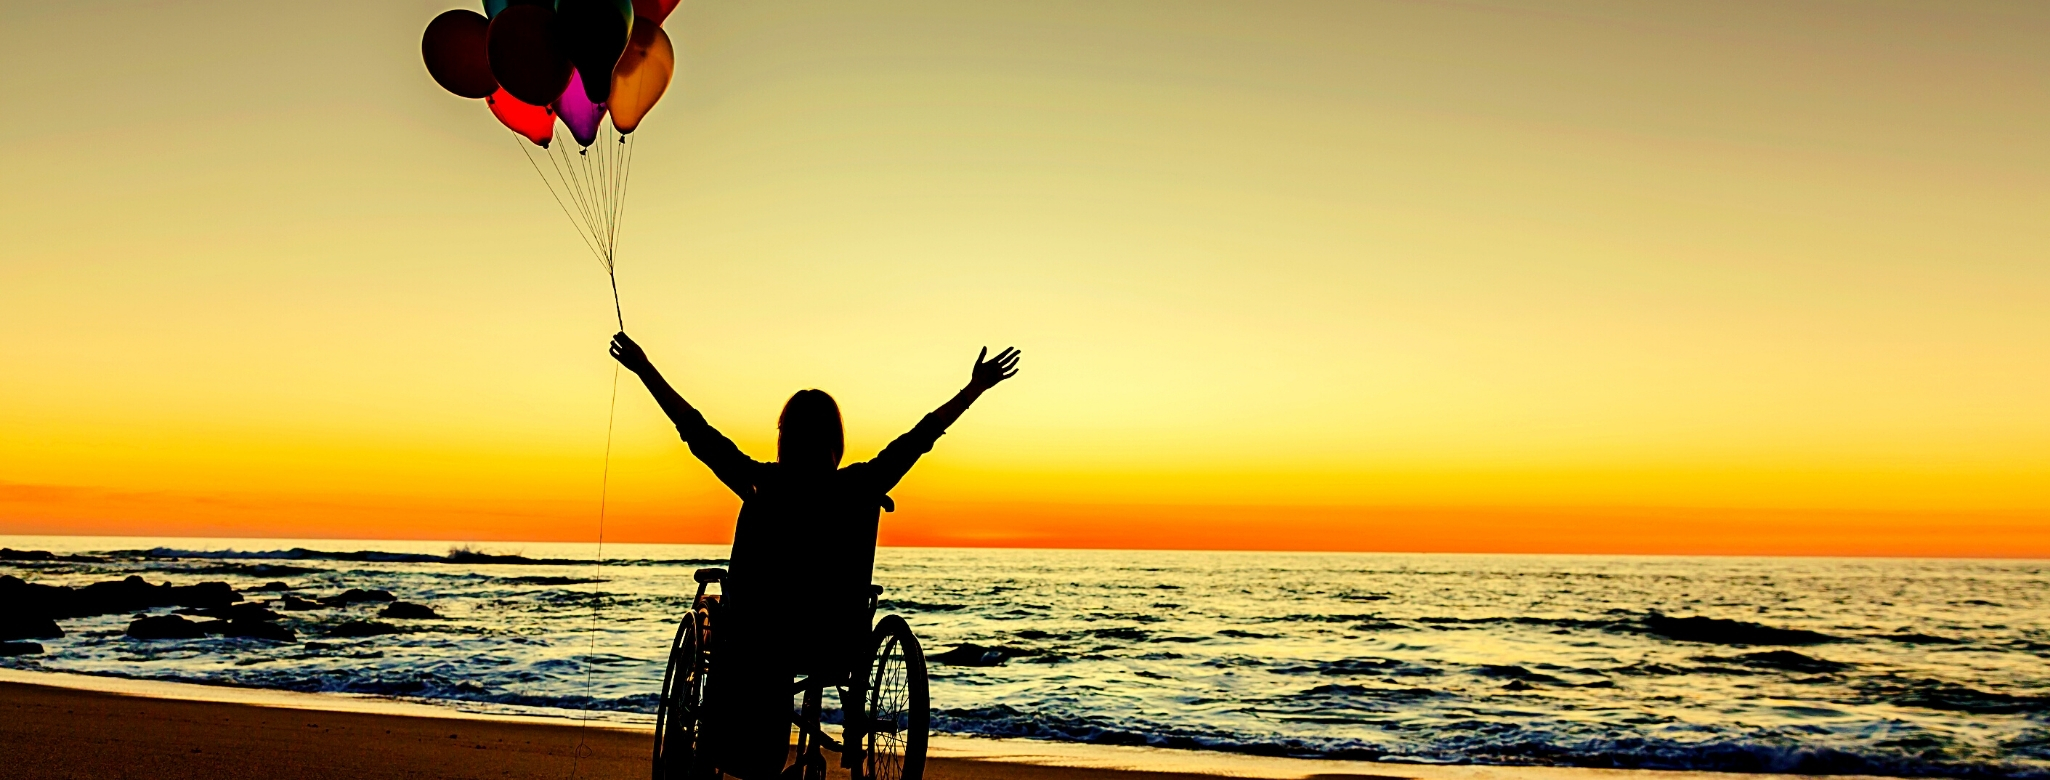 Beach Accommodation in NSW for those with accessibility and wheelchair needs.